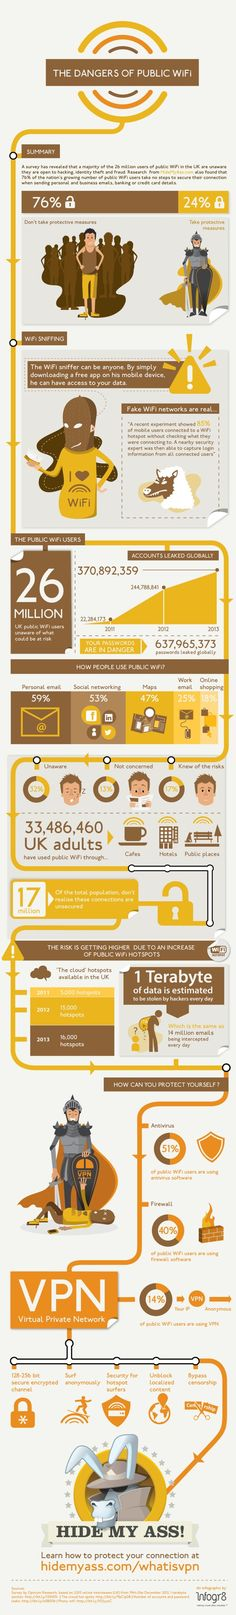 The dangers of public WiFi #infografia #infographic #internet